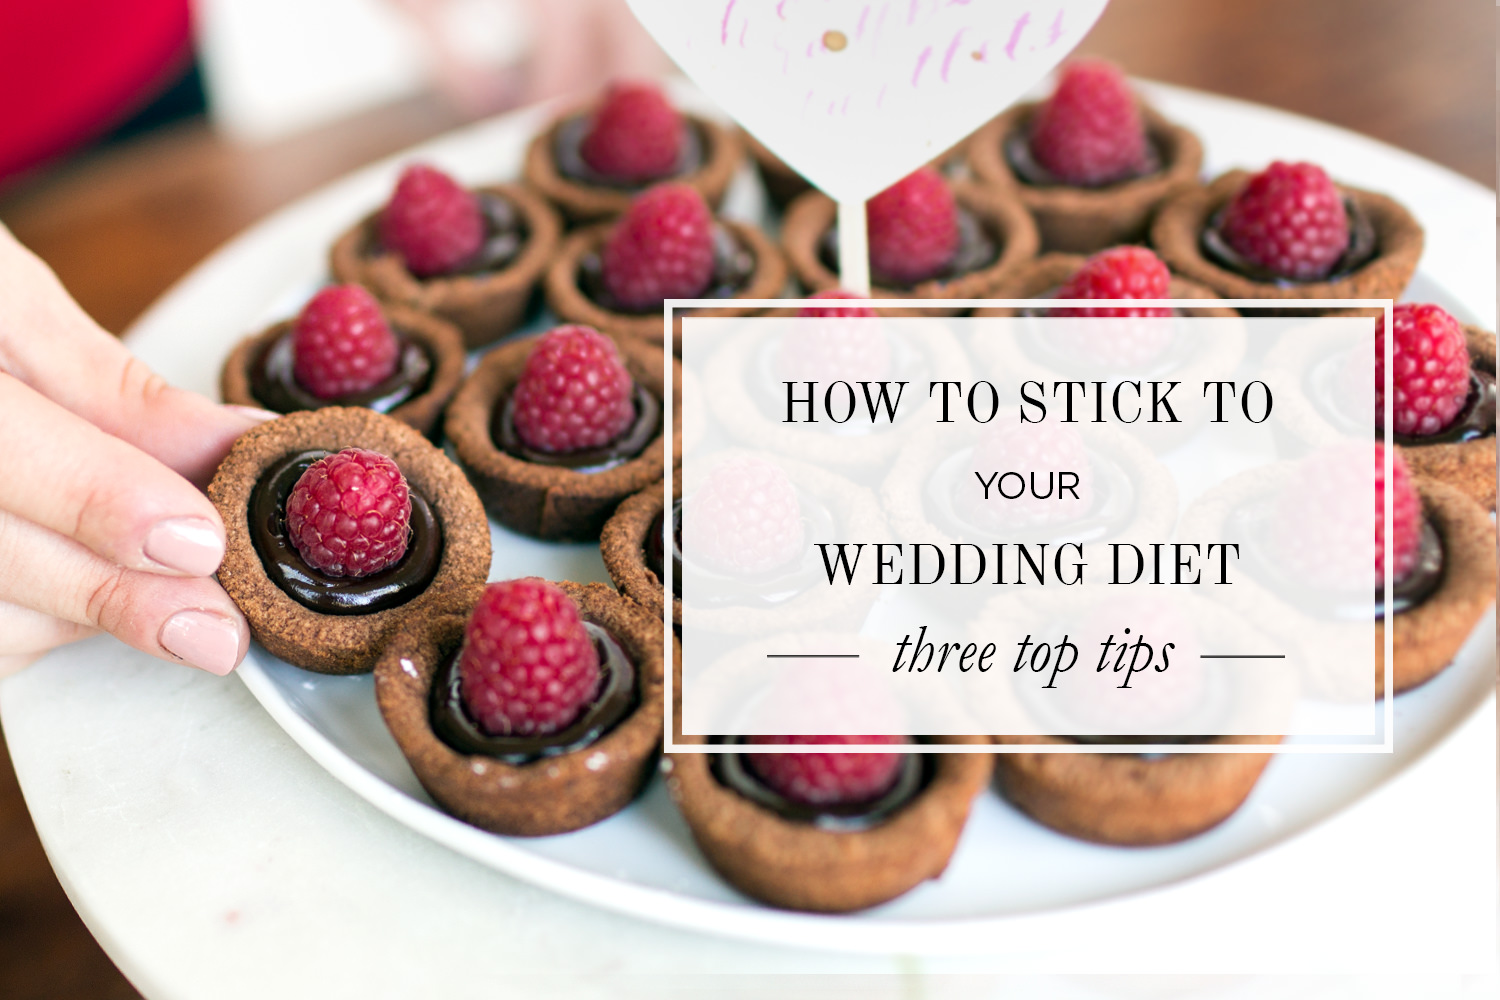 3 Tips on How to Stick to Your Wedding Diet